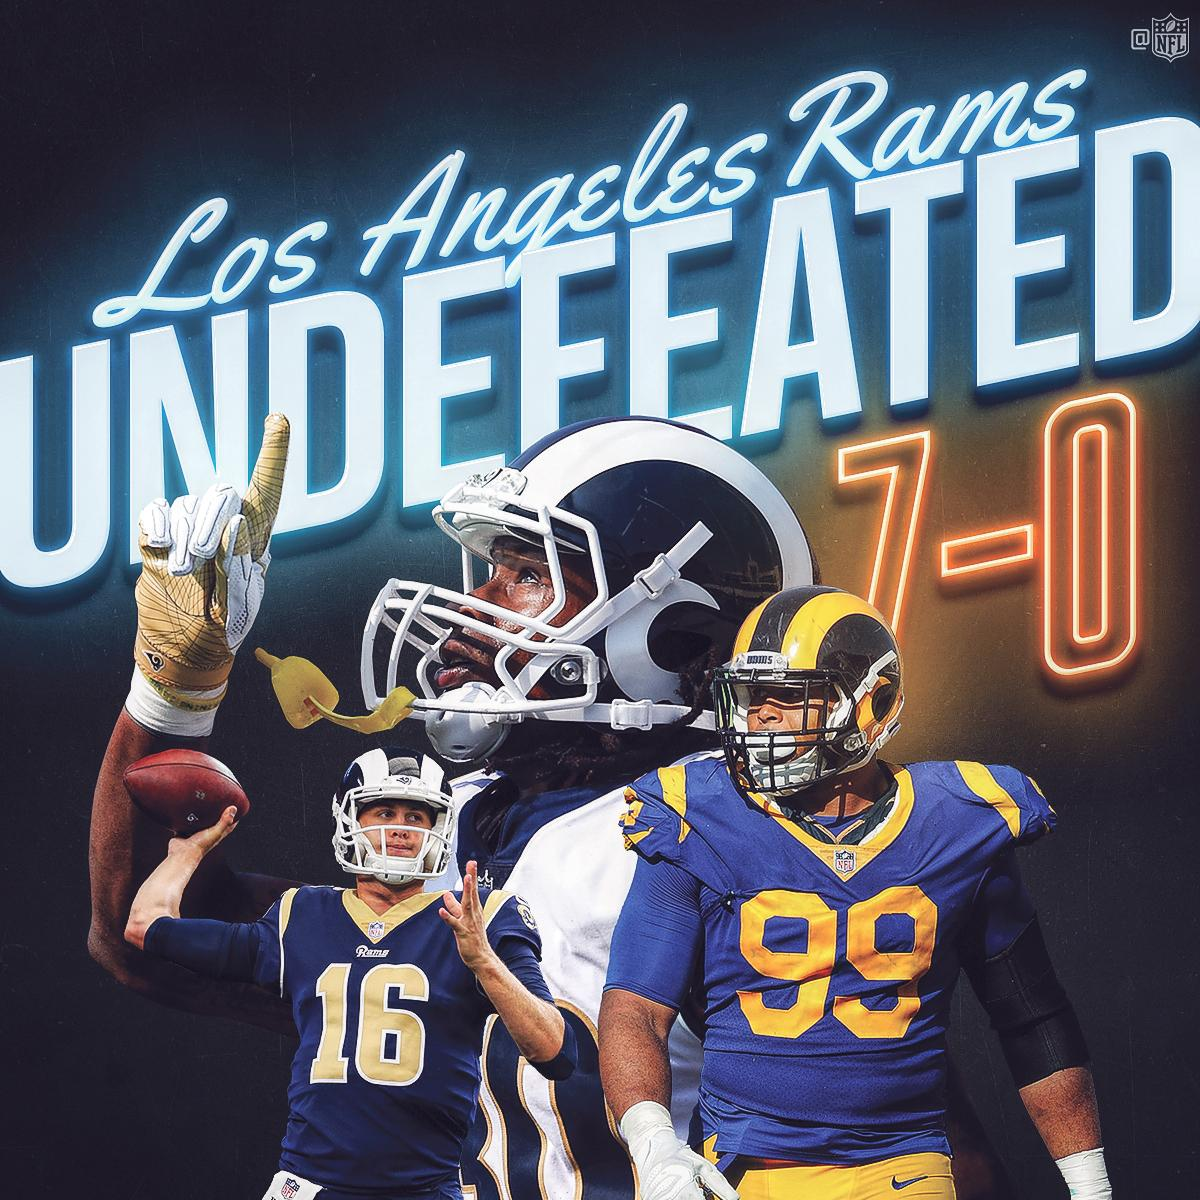 SEVEN and 0. #LARams https://t.co/XmayR5oeiw